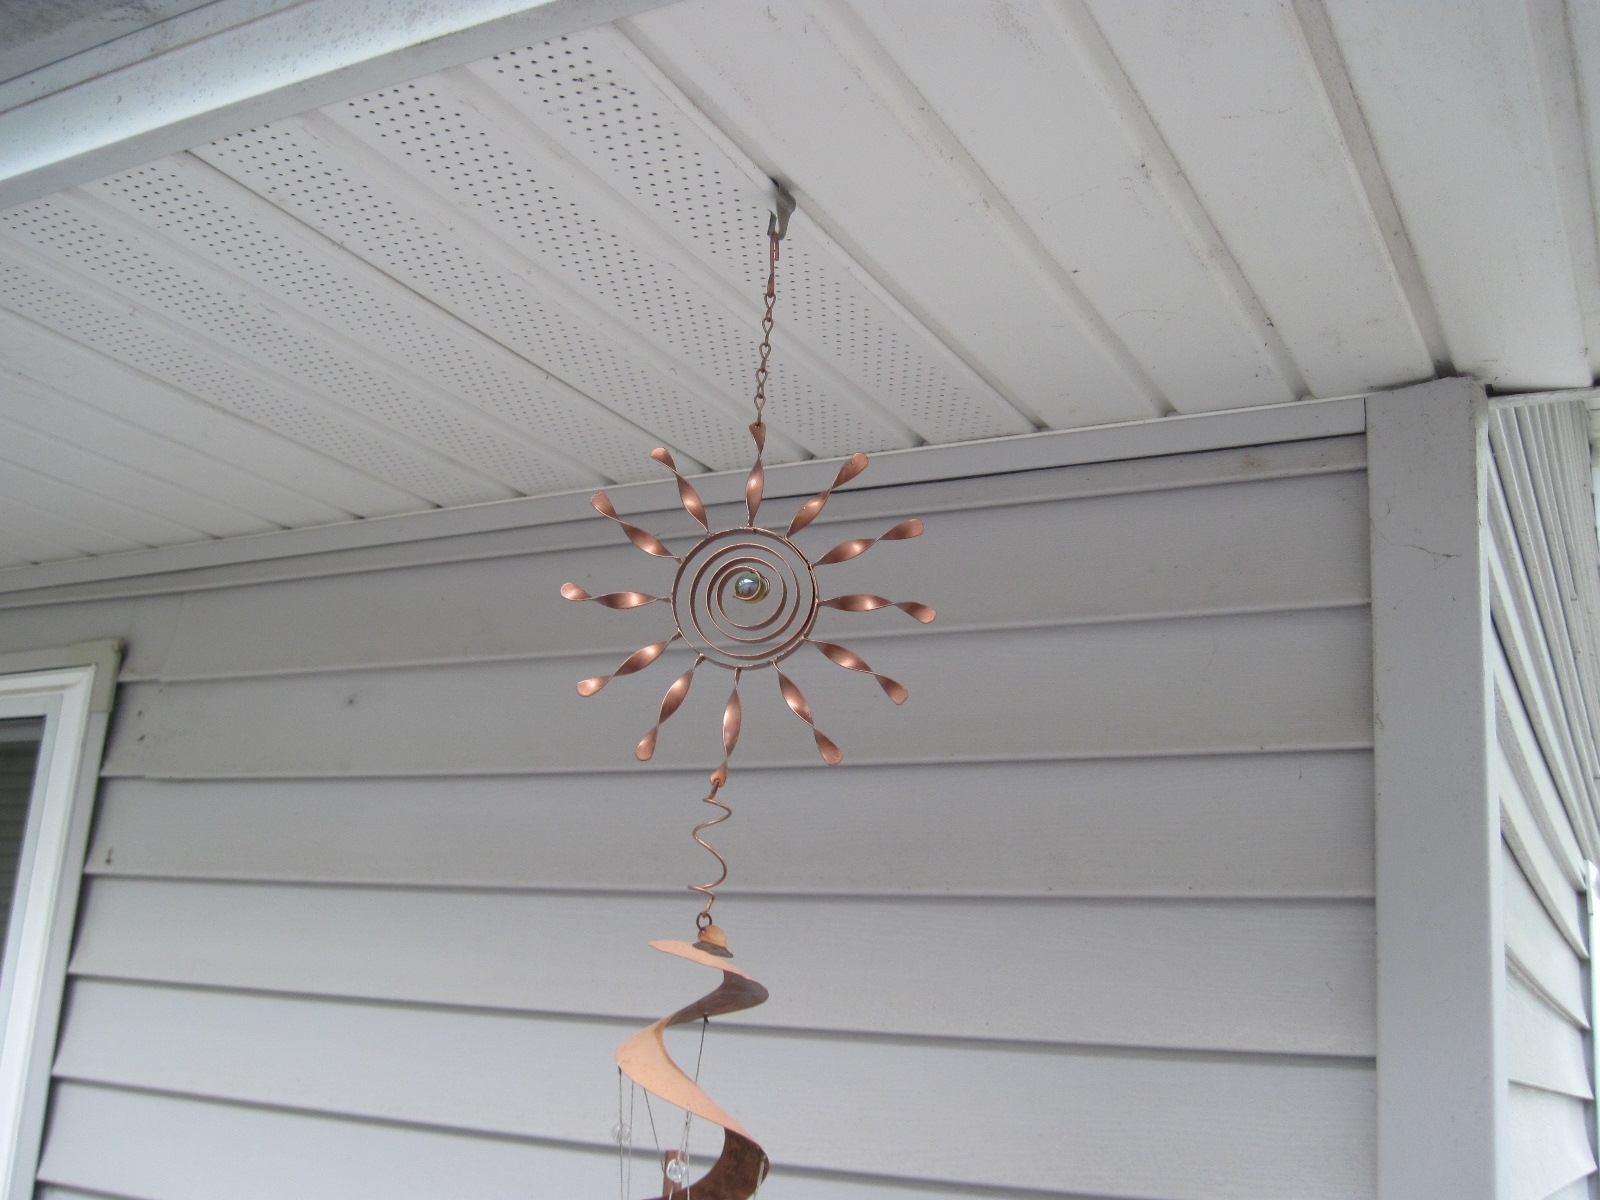 Hang Wind Chime From Soffit | For Our Home | Pinterest | Decking And Intended For Hanging Outdoor Lights On Vinyl Siding (#3 of 15)